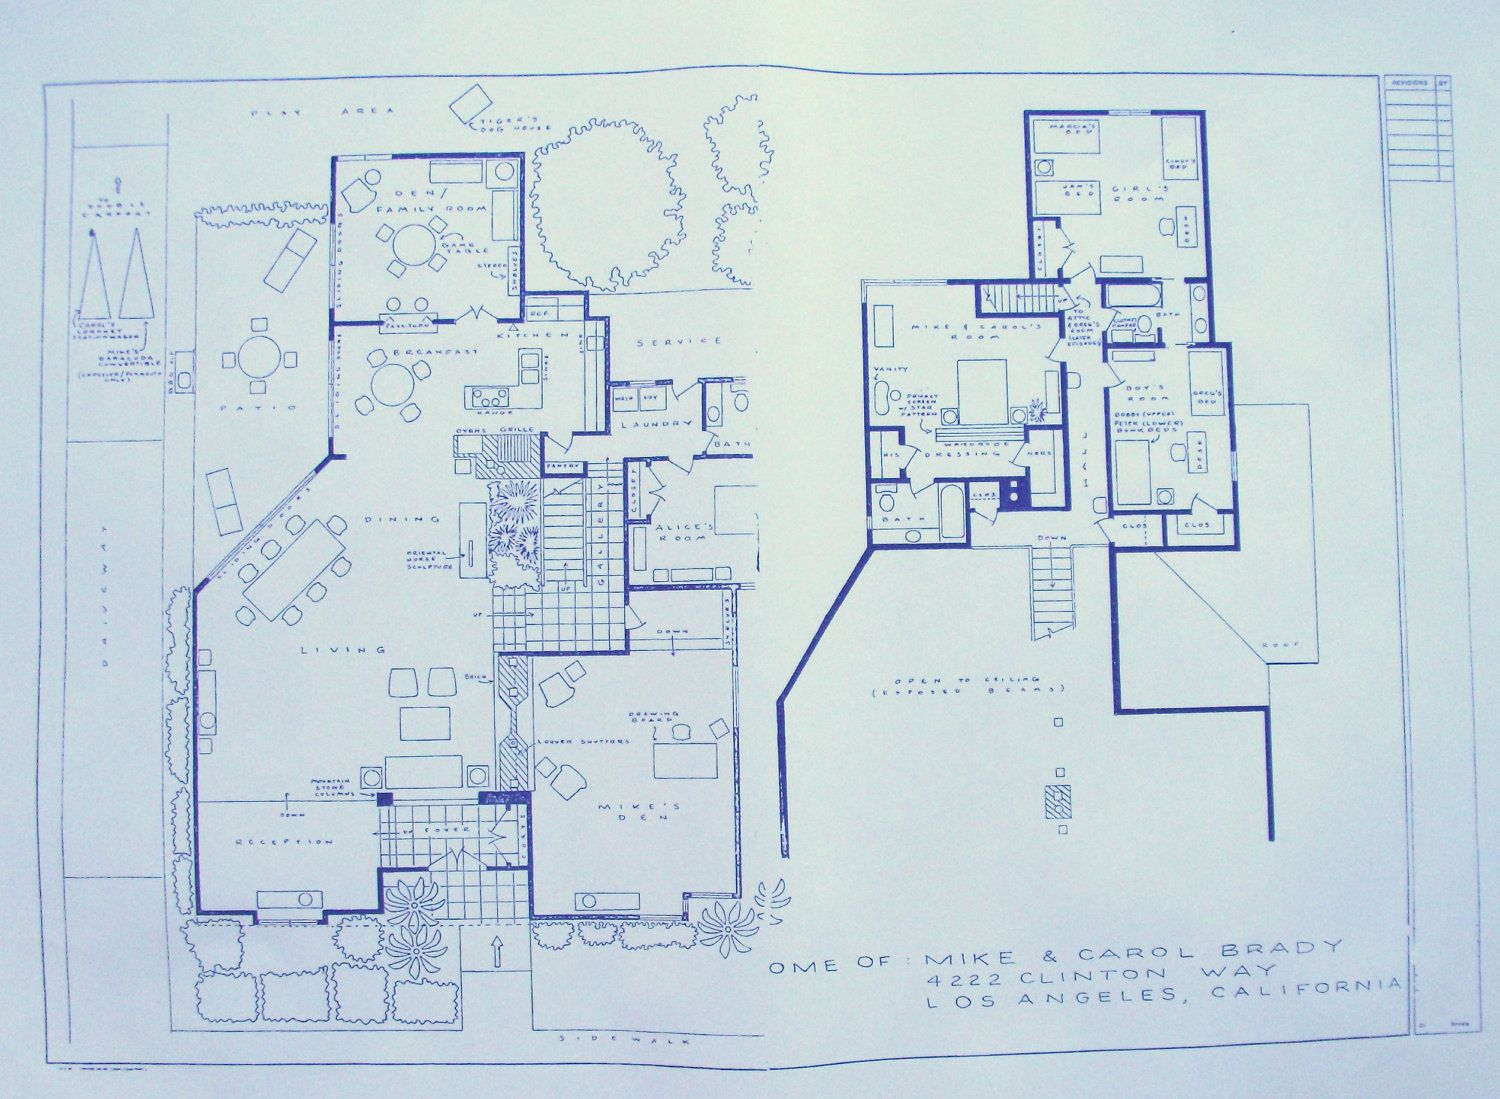 House from brady bunch tv show blueprint floor plans sims wonderful 24 x 36 blueprint of the brady bunch house made the old fashioned way with ammonia activated paper on a diazit blueprint machine malvernweather Images